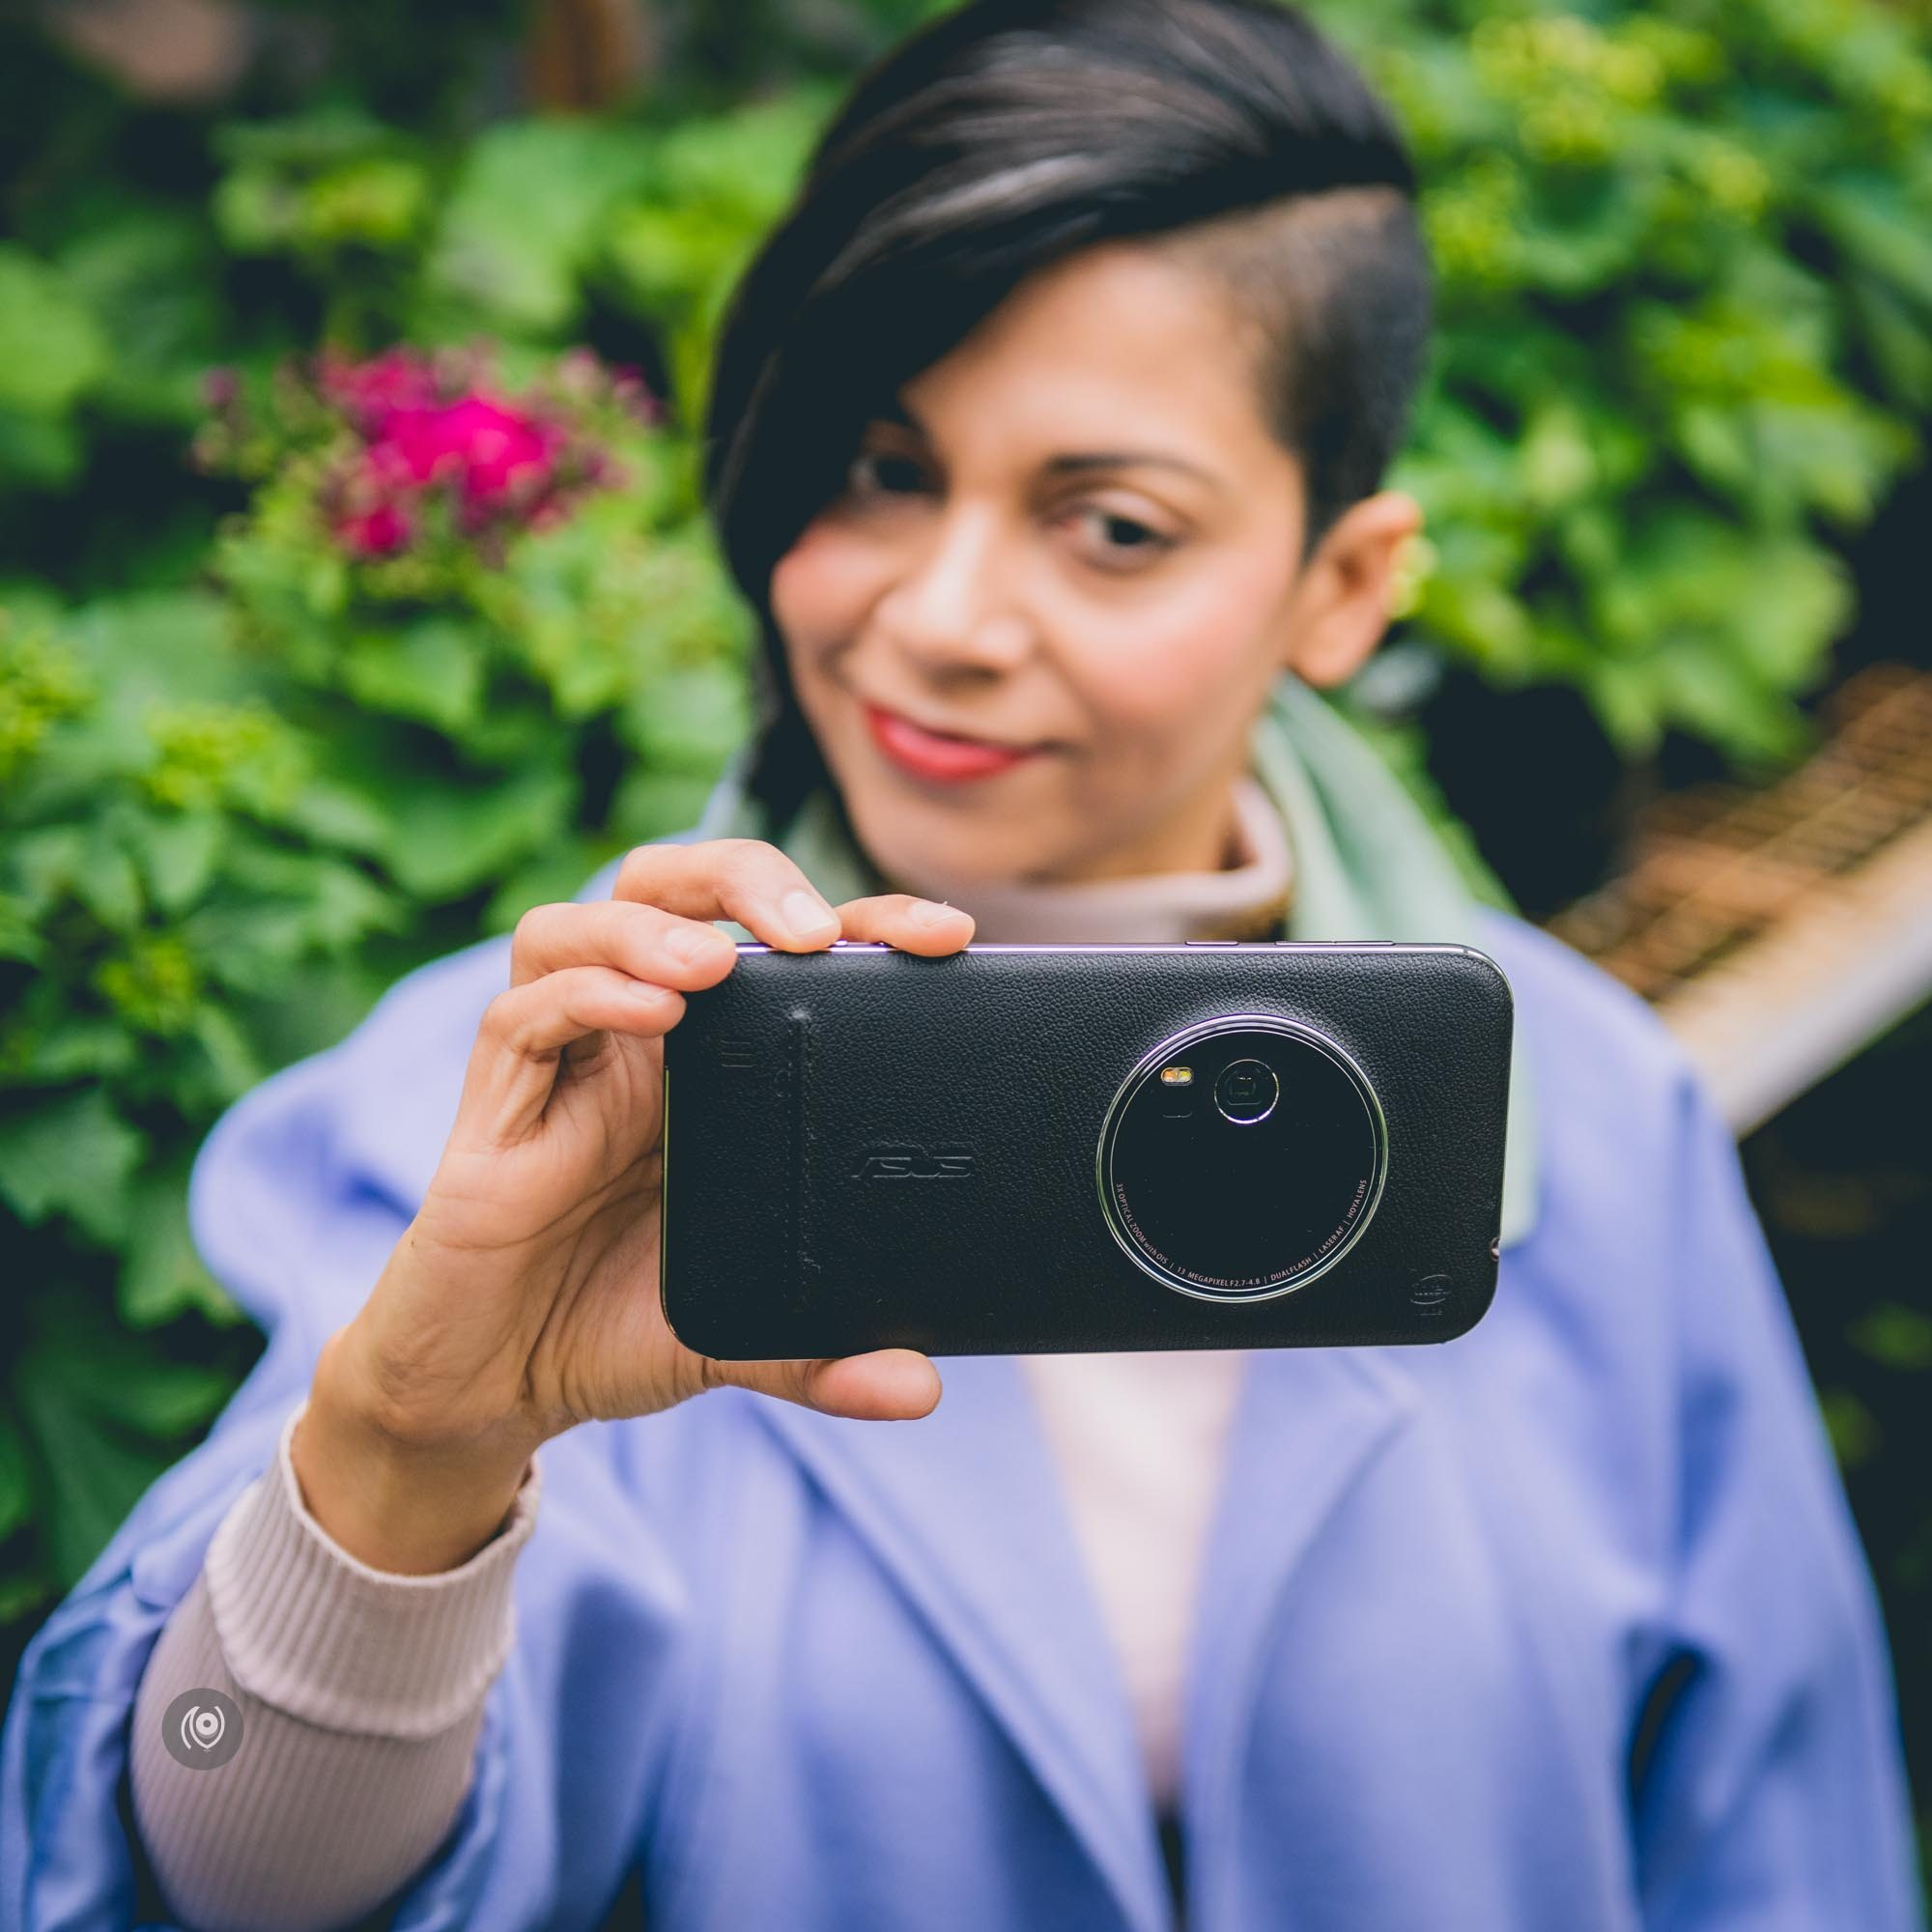 #CoverUp 63 ASUS ZenFone Zoom, 13MP Camera Phone, #ASUSxNaina, ASUS, JW Marriott Walnut Grove & Spa, Mussoorie, Naina.co, Naina Redhu, Luxury Photographer, Lifestyle Photographer, Luxury Blogger, Lifestyle Blogger, Experience Collector, Personal Style, #CoverUp